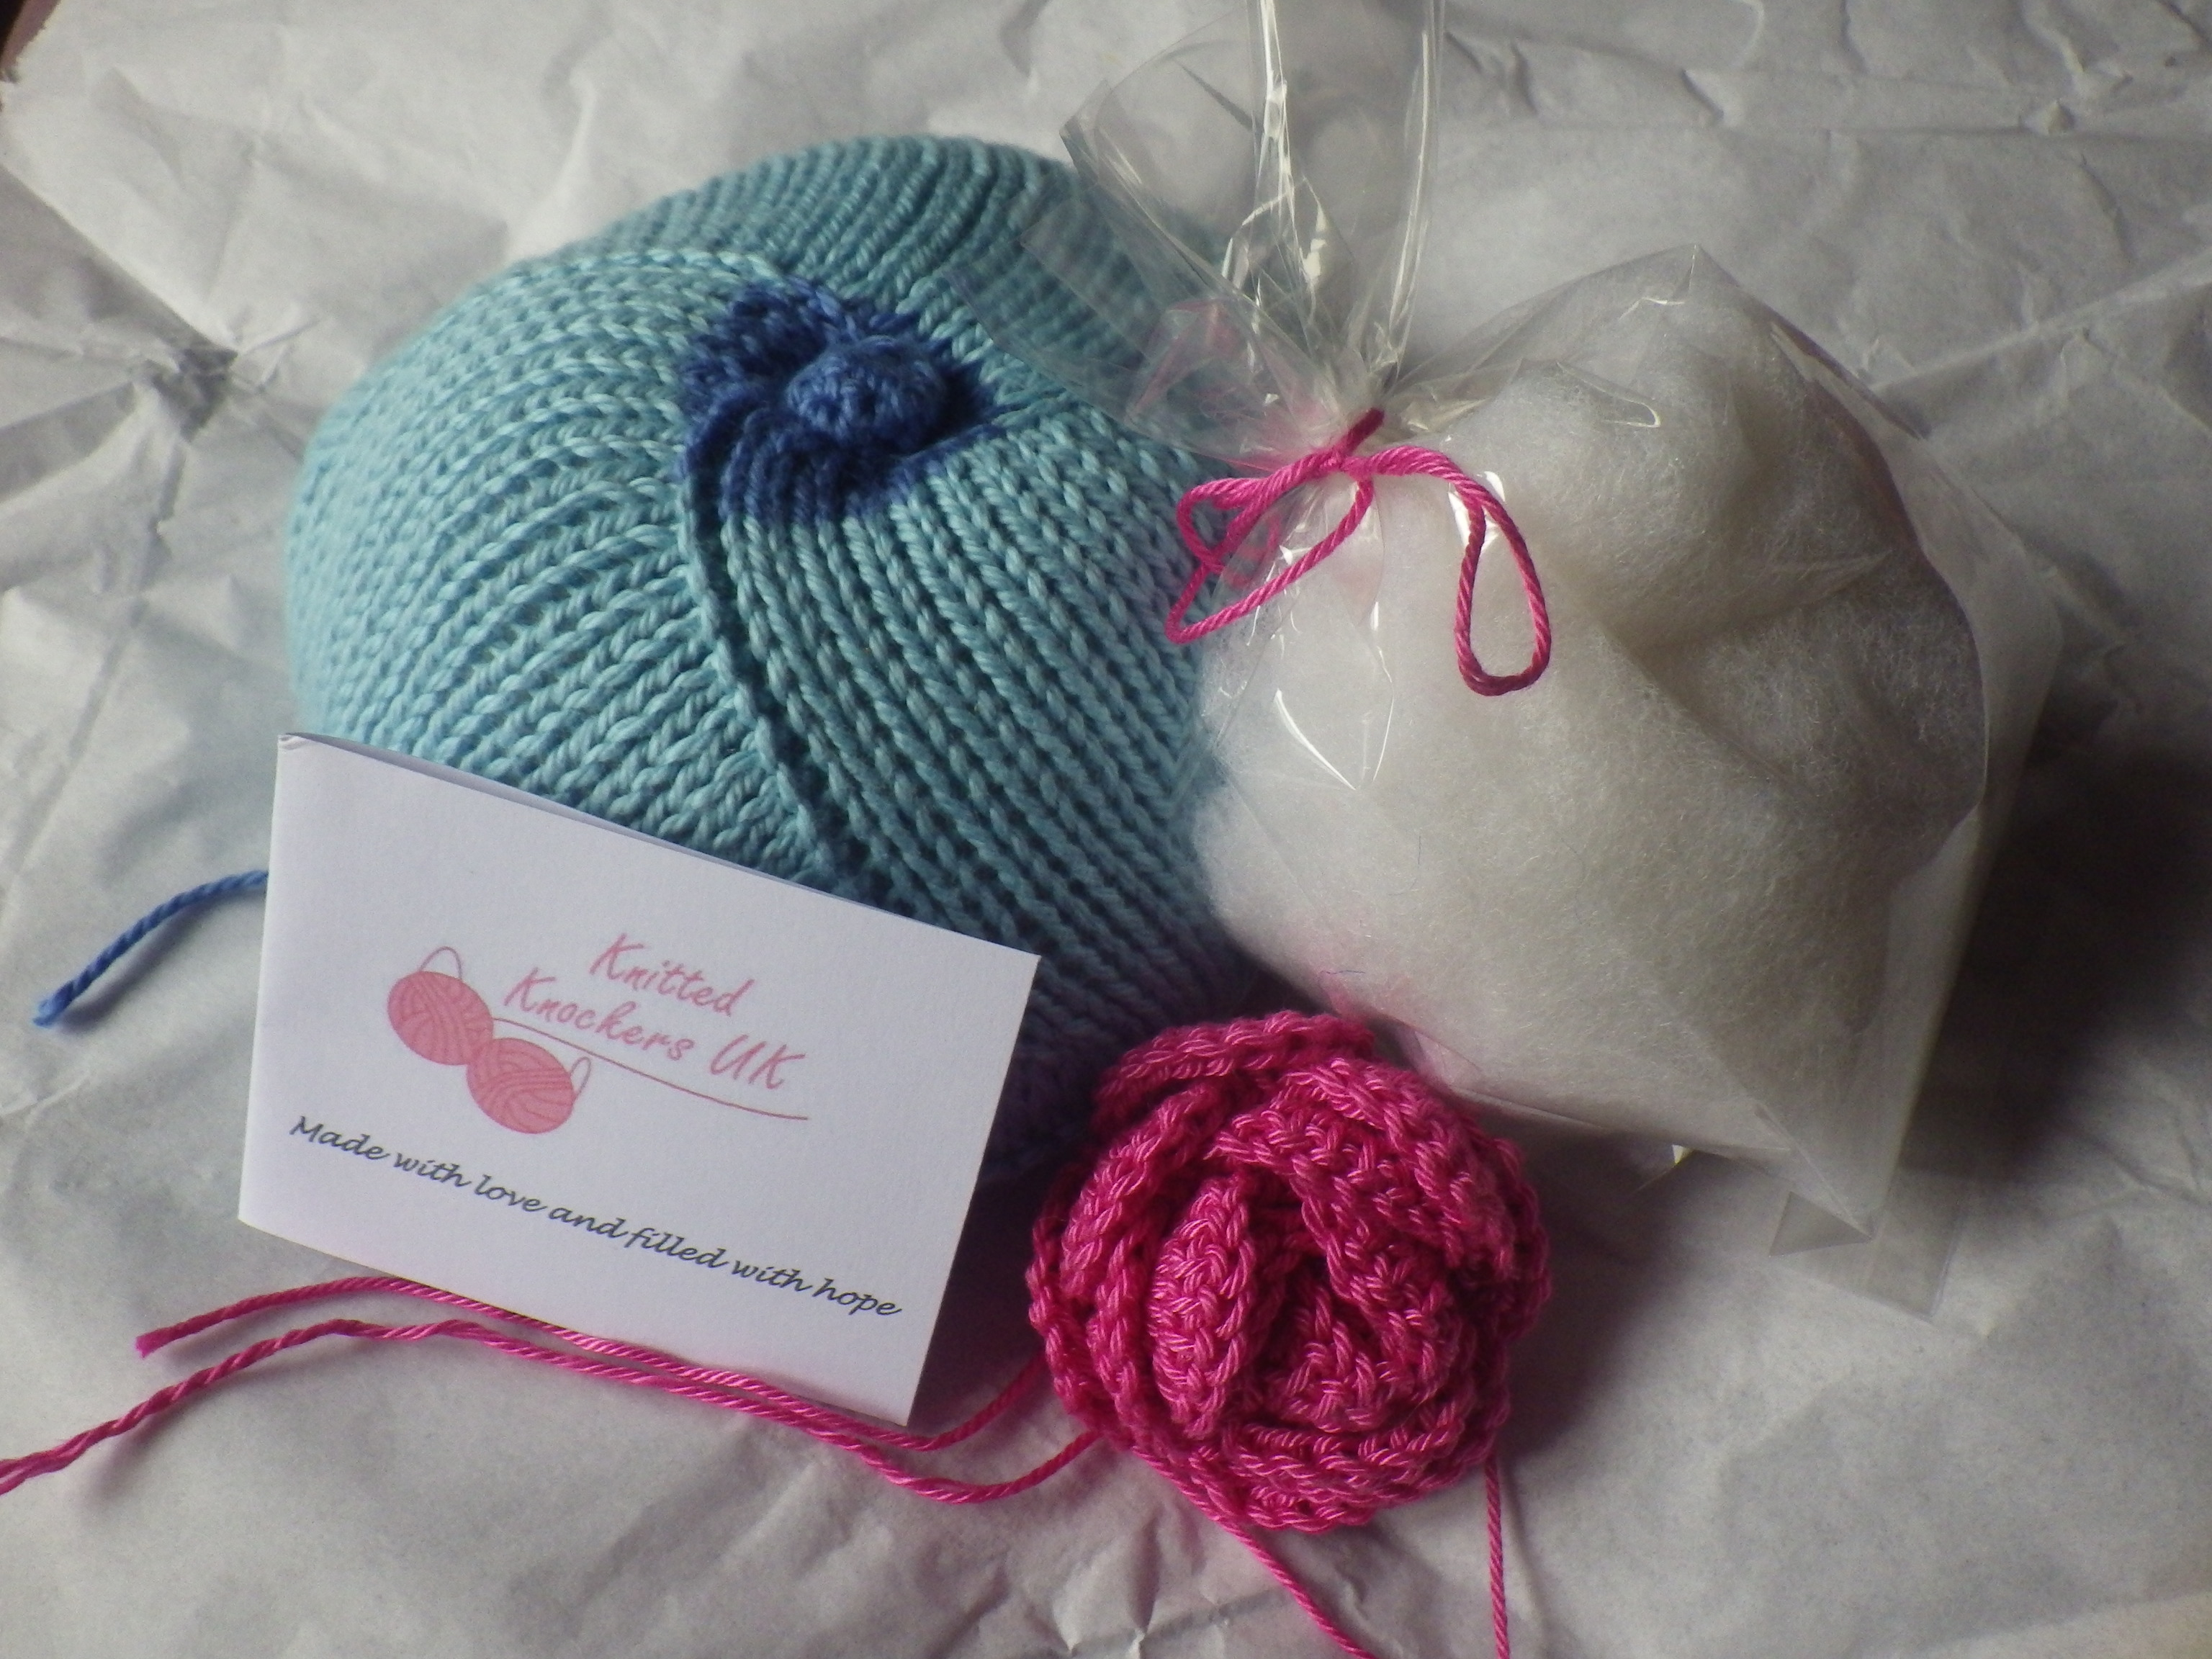 Knitted knockers the snail of happiness a knocker ready to go with extra stuffing and a little gift of ccuart Images